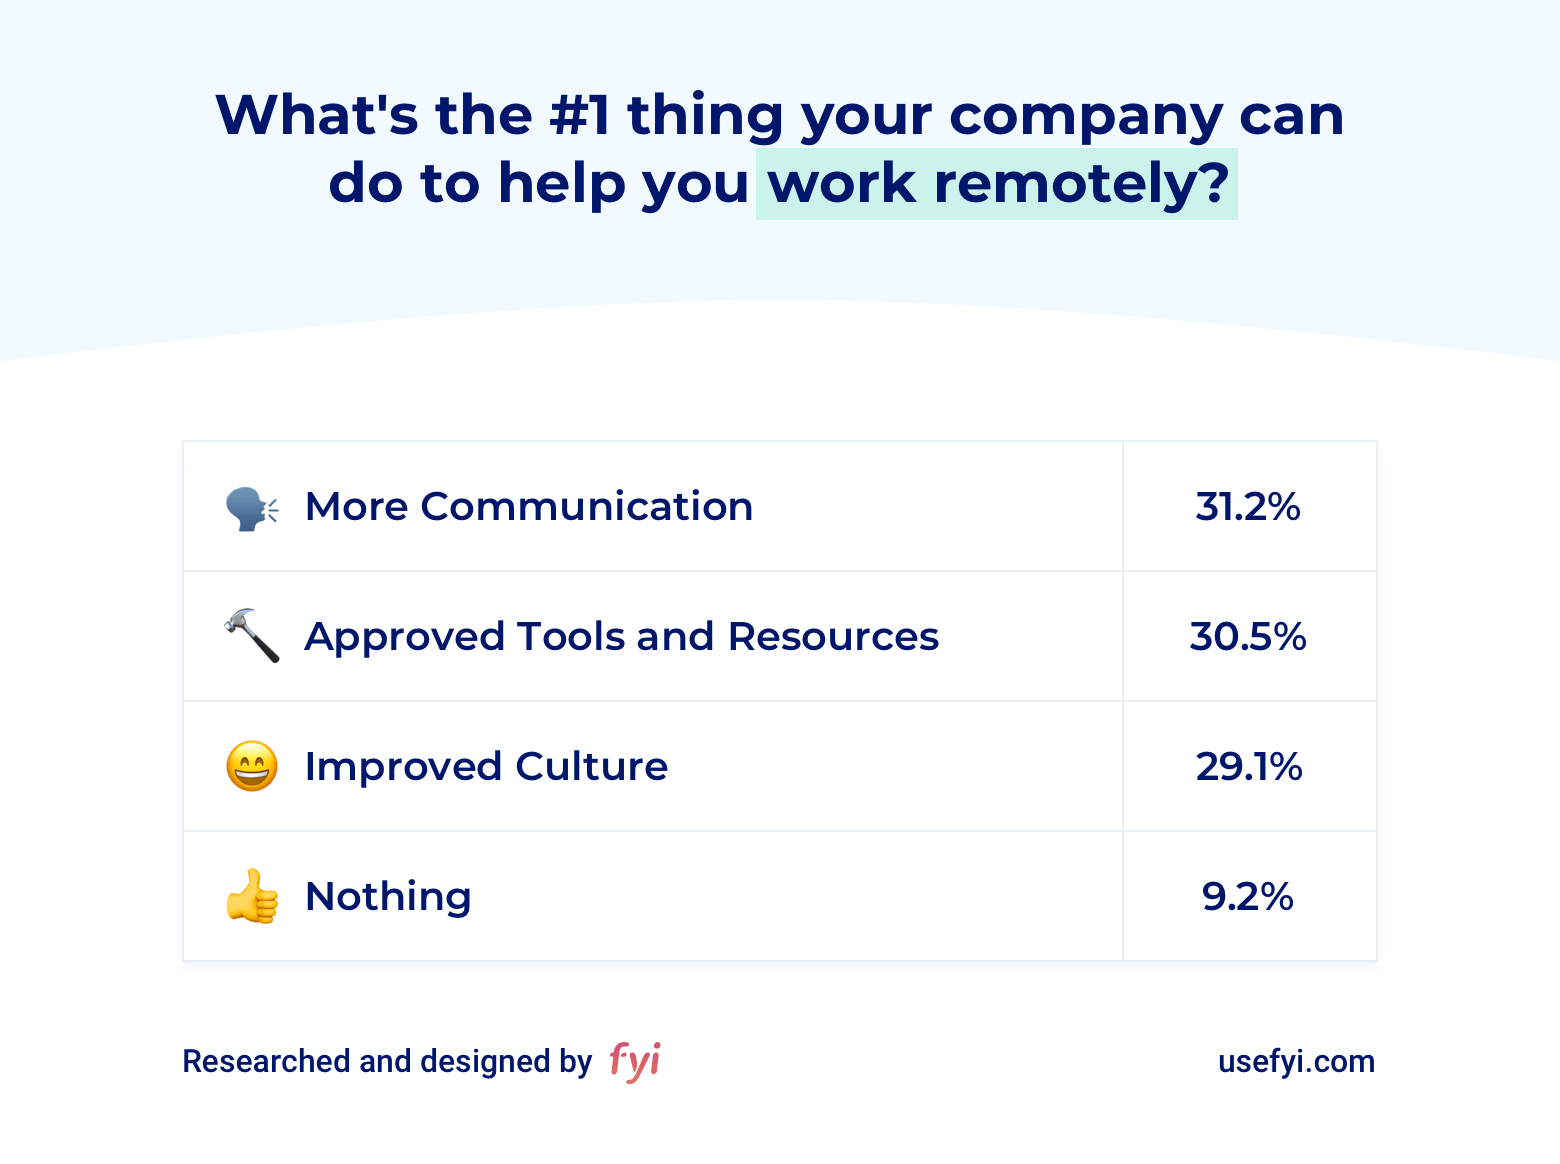 Help with remote work